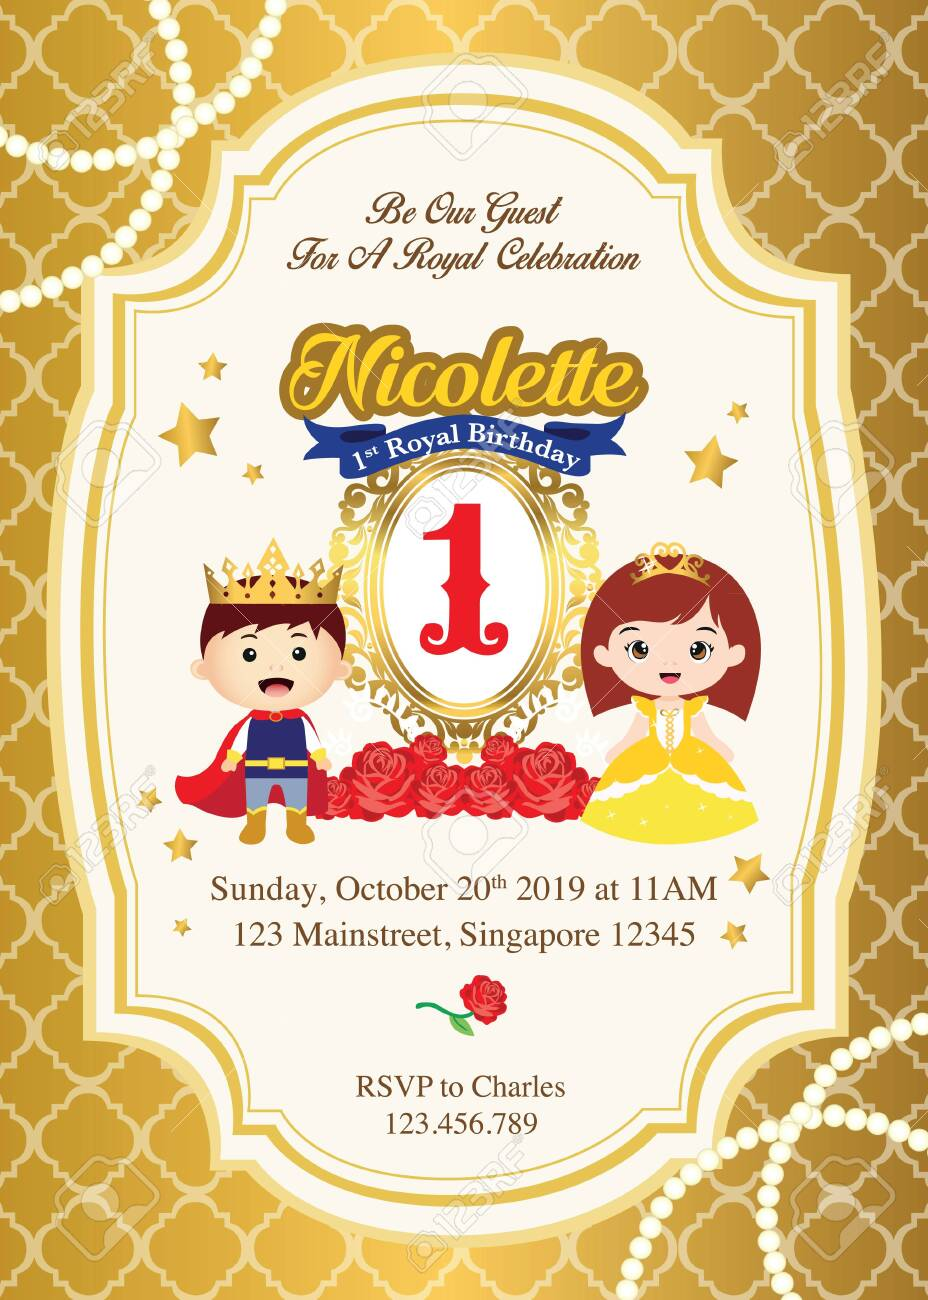 first royal birthday invitation with cute prince and princess